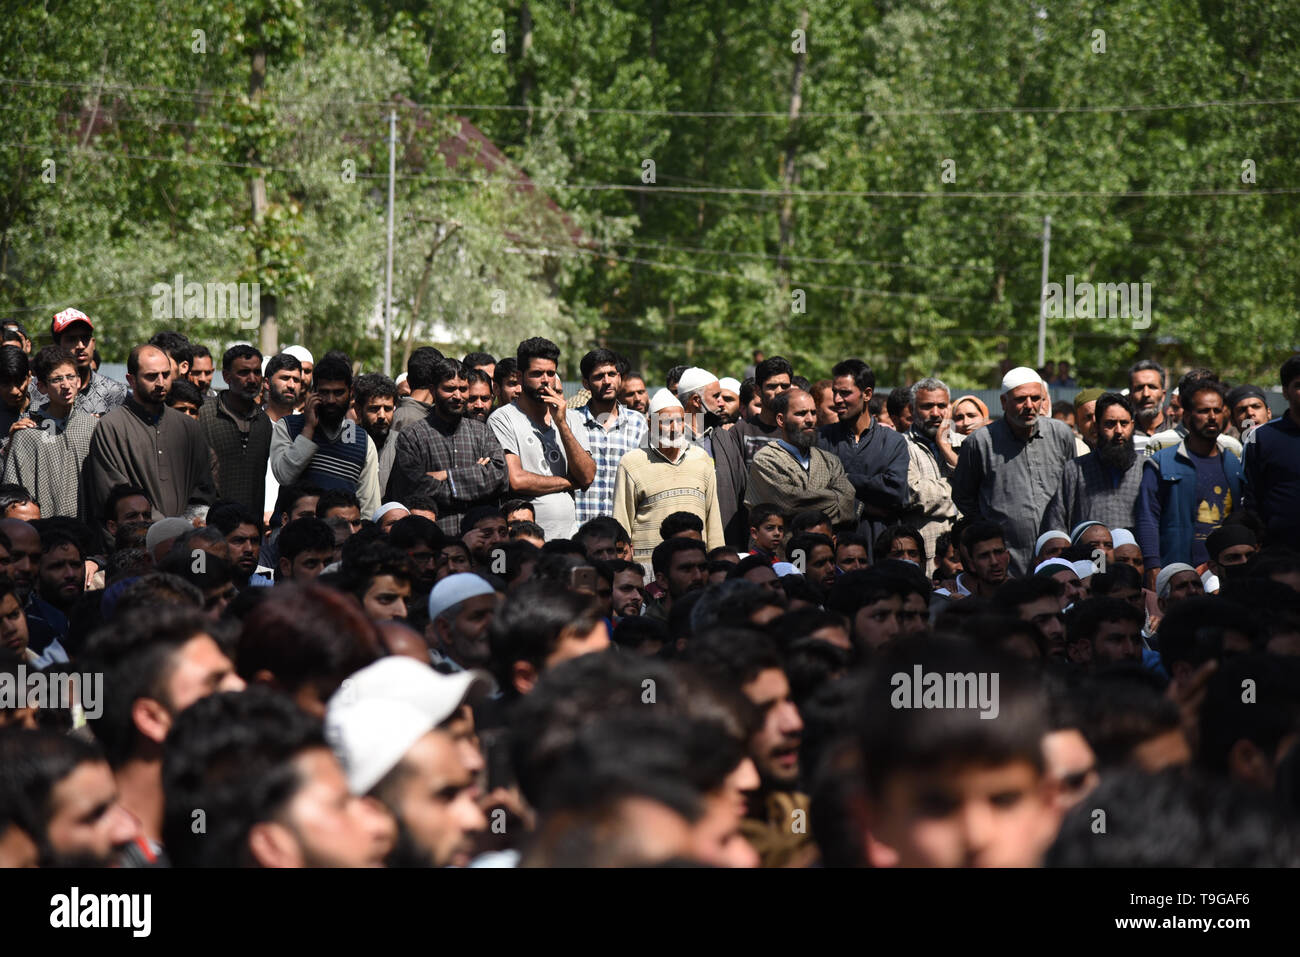 Kashmiri villagers are seen gathered during the funeral procession of Kashmiri Rebel Showkat Ahmed at his residence in Pulwama, South of Srinagar. Thousands attended the funeral ceremony of slain Showkat Ahmed Dar at his residence in Panzgam Pulwama. Showkat was among the three Kashmiri Rebels killed in a gunfight in Pulwama. - Stock Image